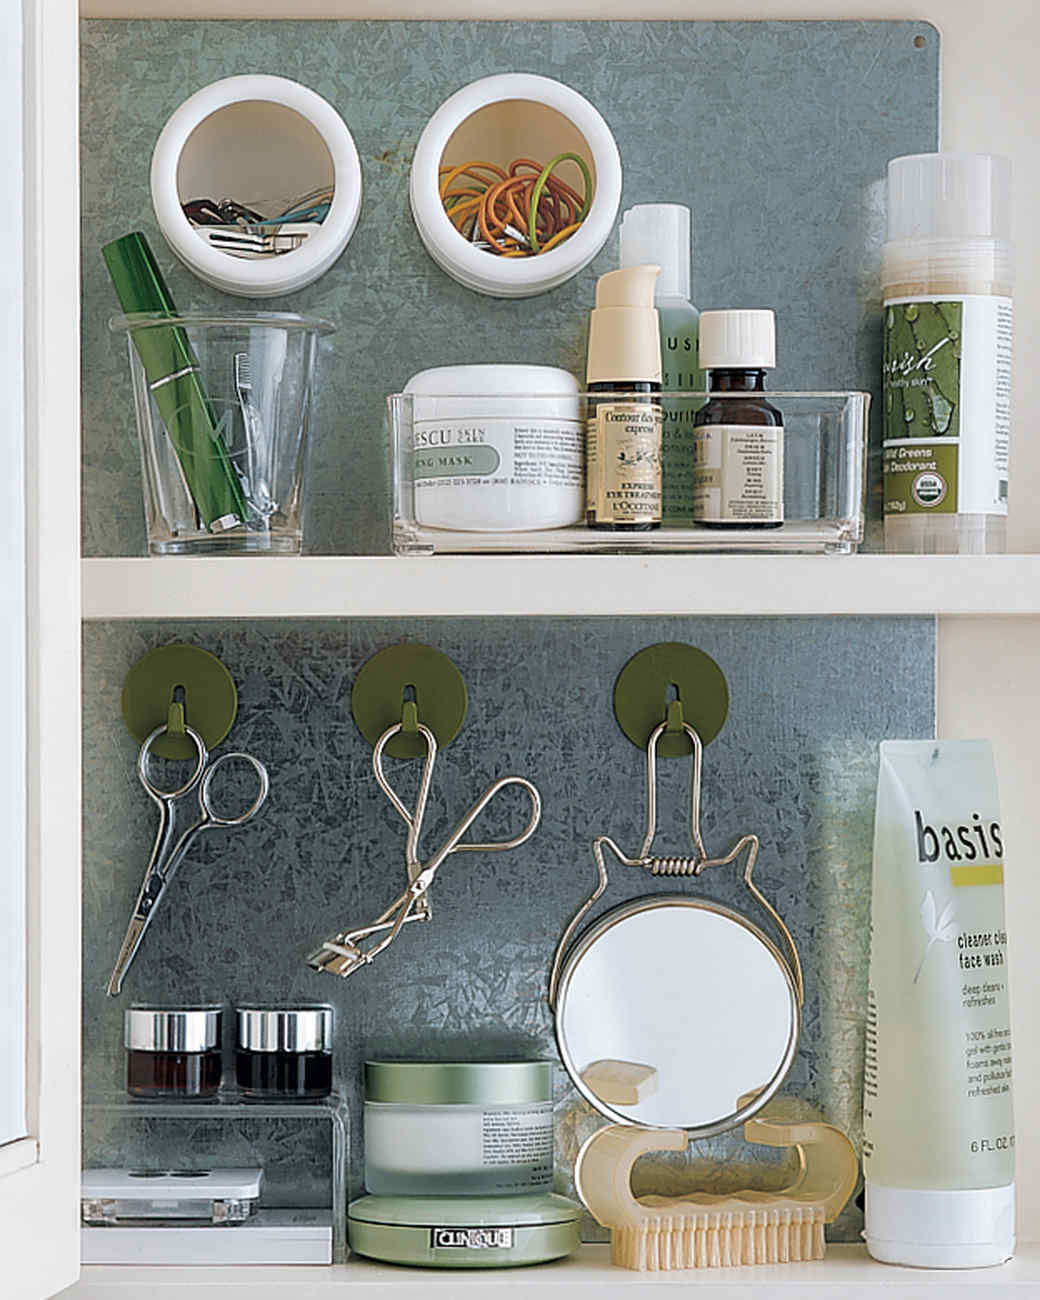 How To Organize A Bathroom Bathroom Organization Tips Martha Stewart